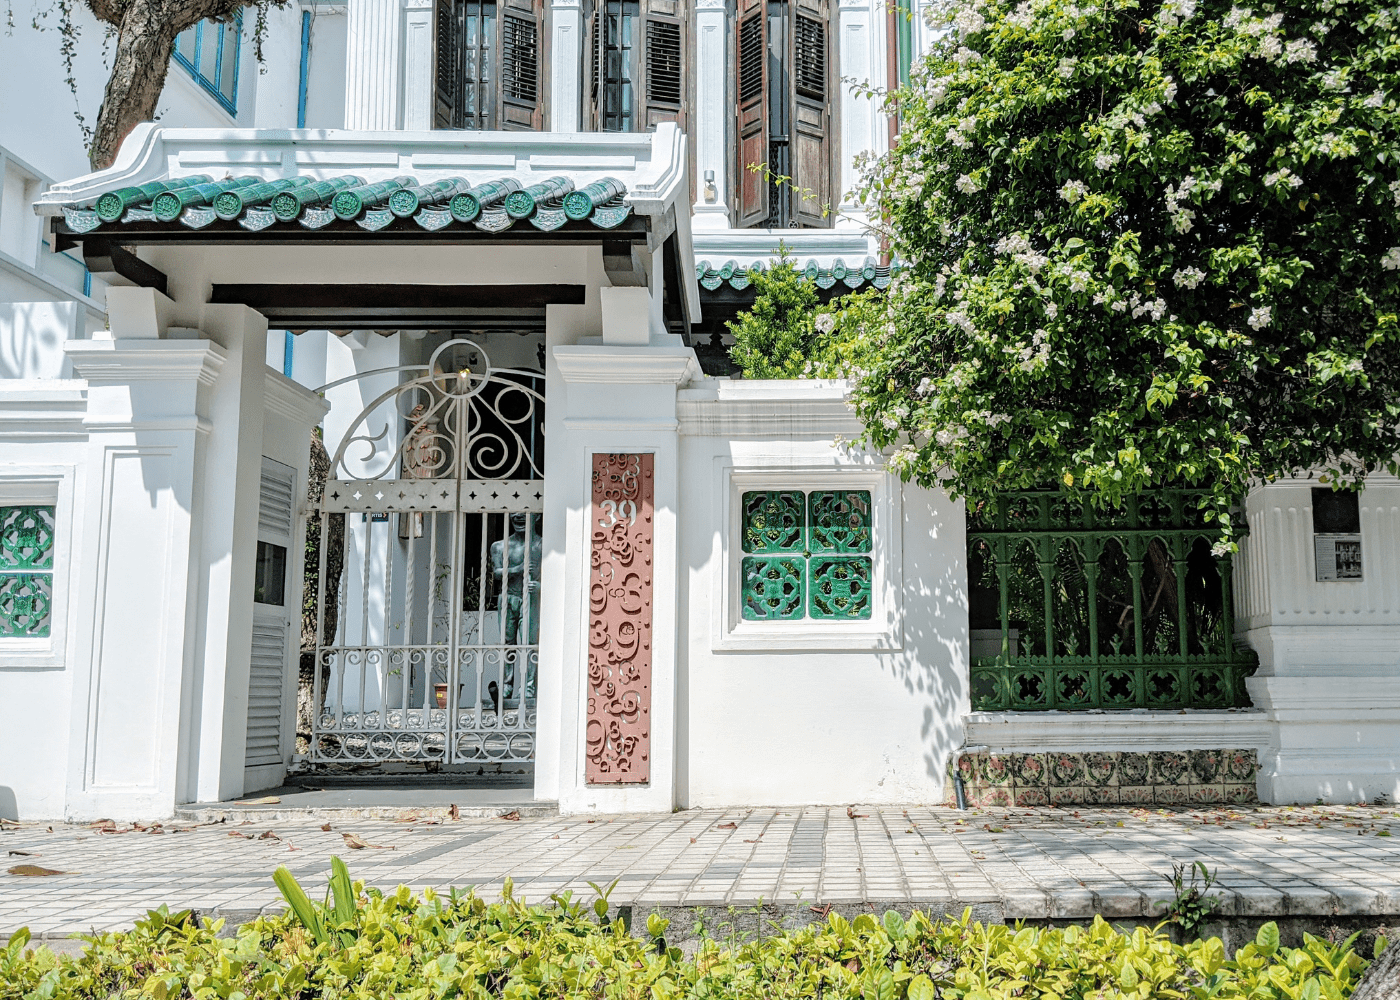 No. 39 Emerald Hill, heritage shophouses in Singapore | Guide to Emerald Hill